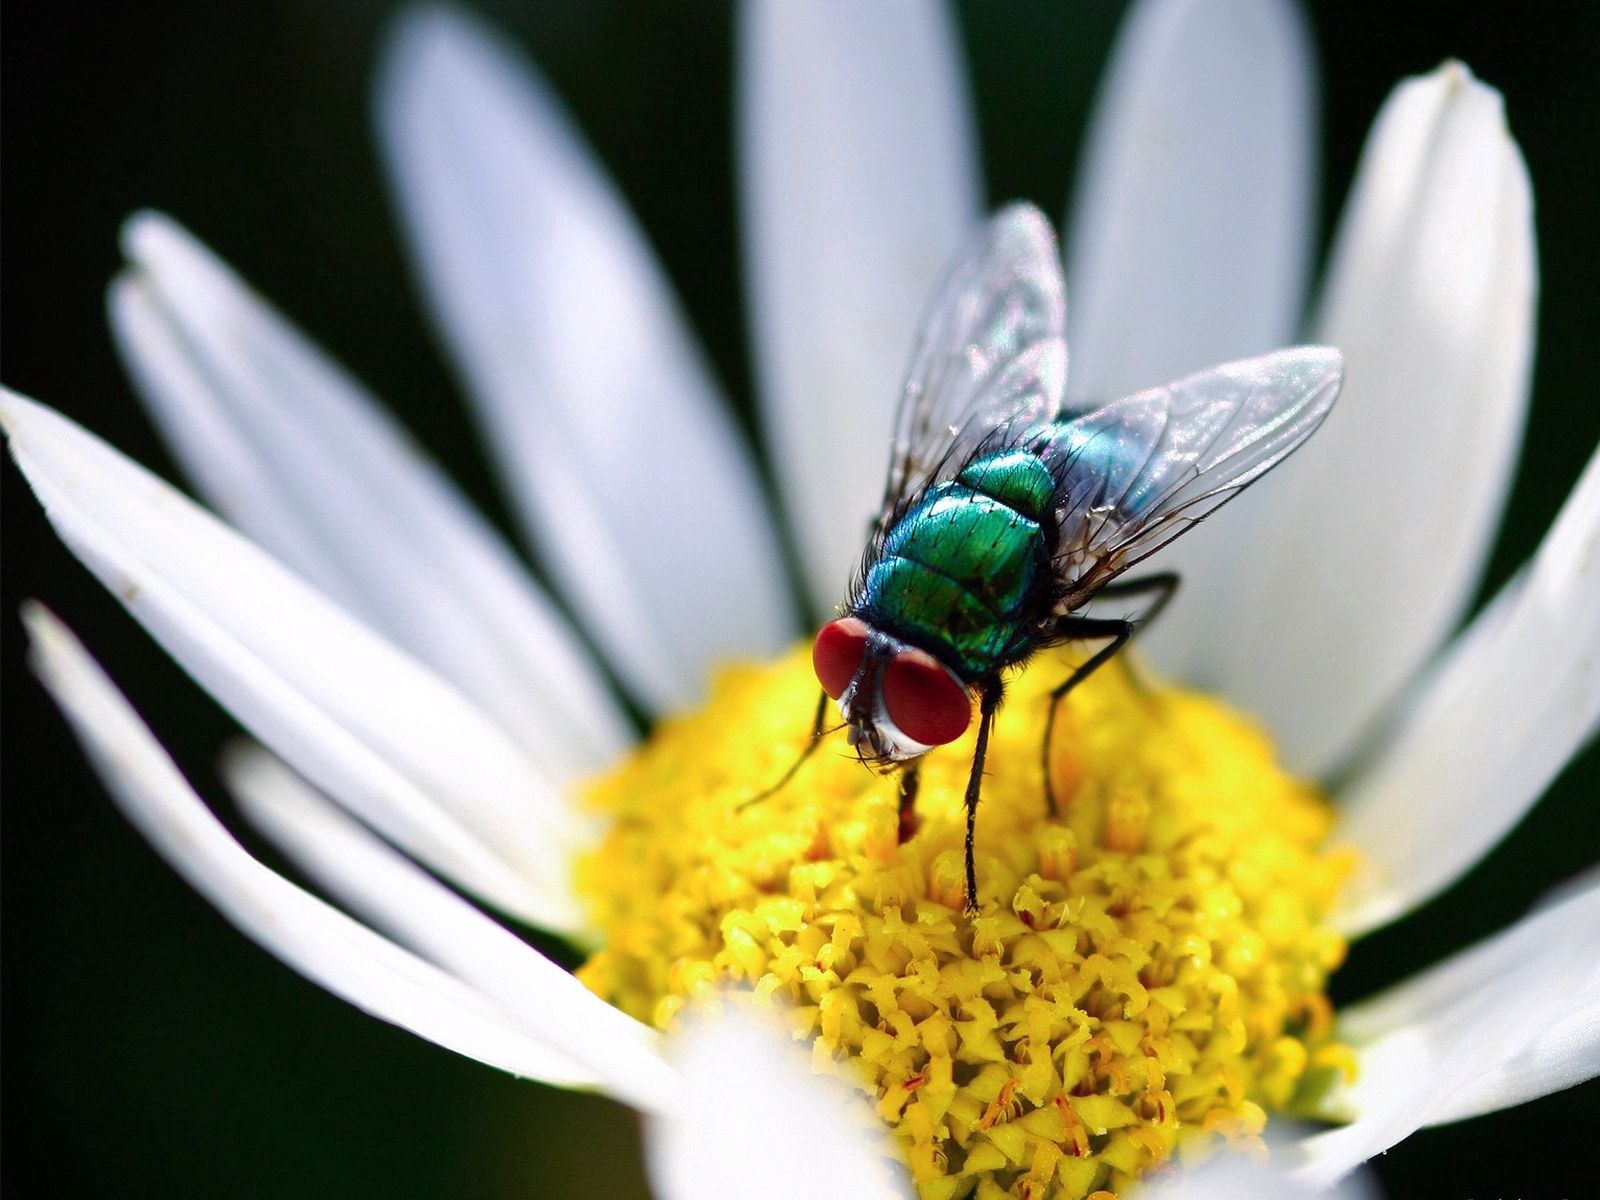 157450 download wallpaper Macro, Fly, Chamomile, Camomile, Flower, Wings, Petals screensavers and pictures for free